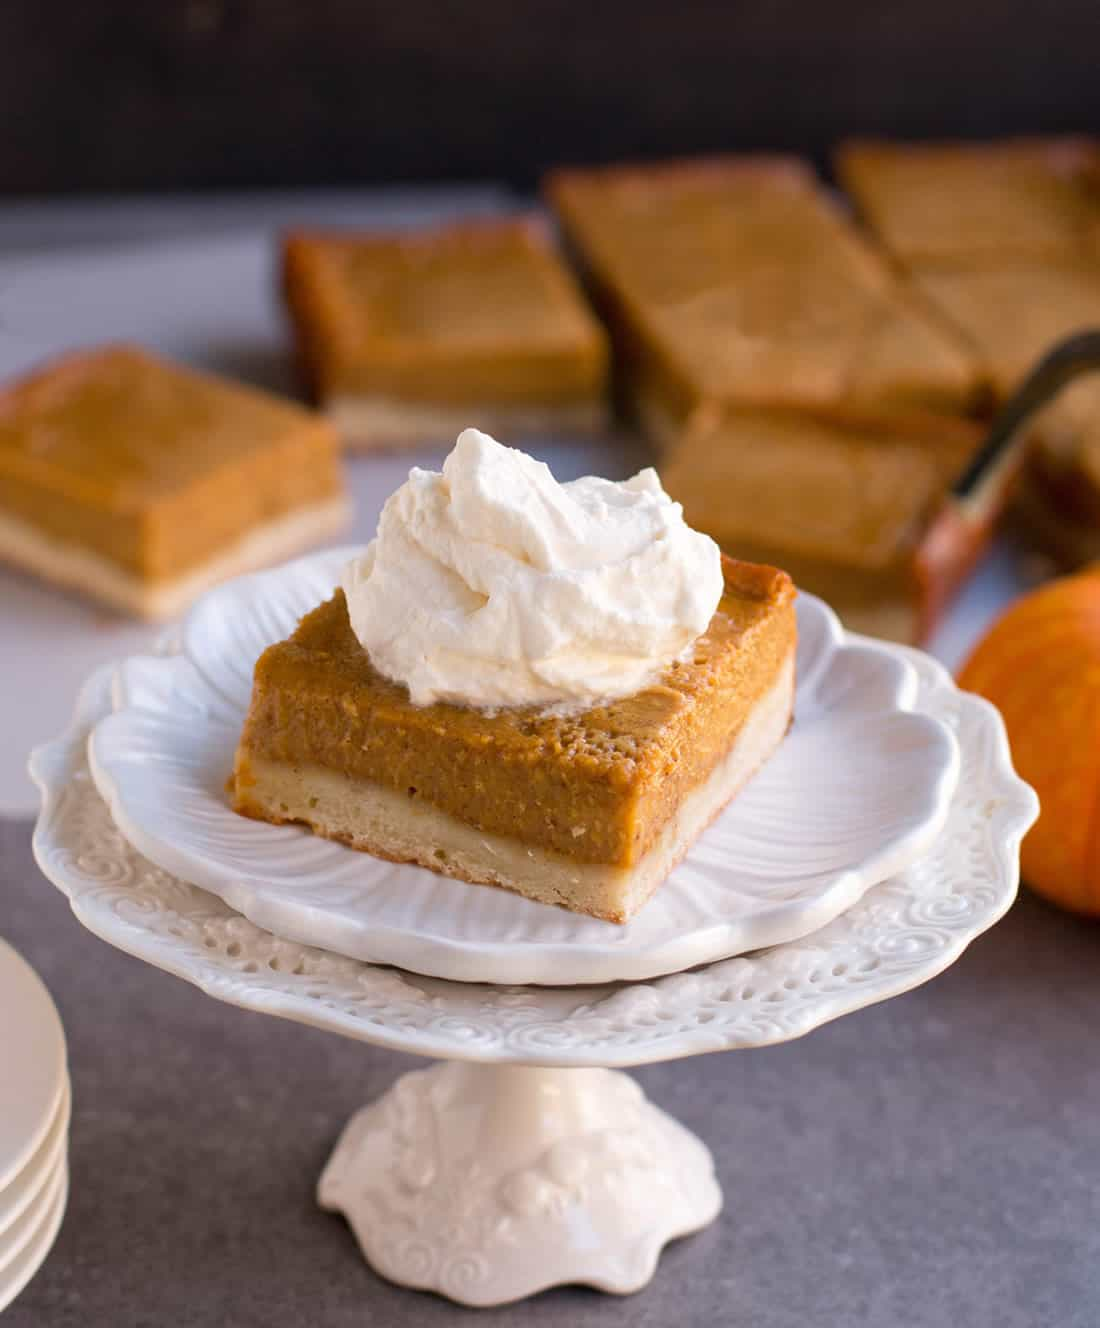 Pumpkin Pie Shortbread Bars. Instead of making a traditional pie crust, bake your pumpkin pie on top of a layer of tender shortbread.